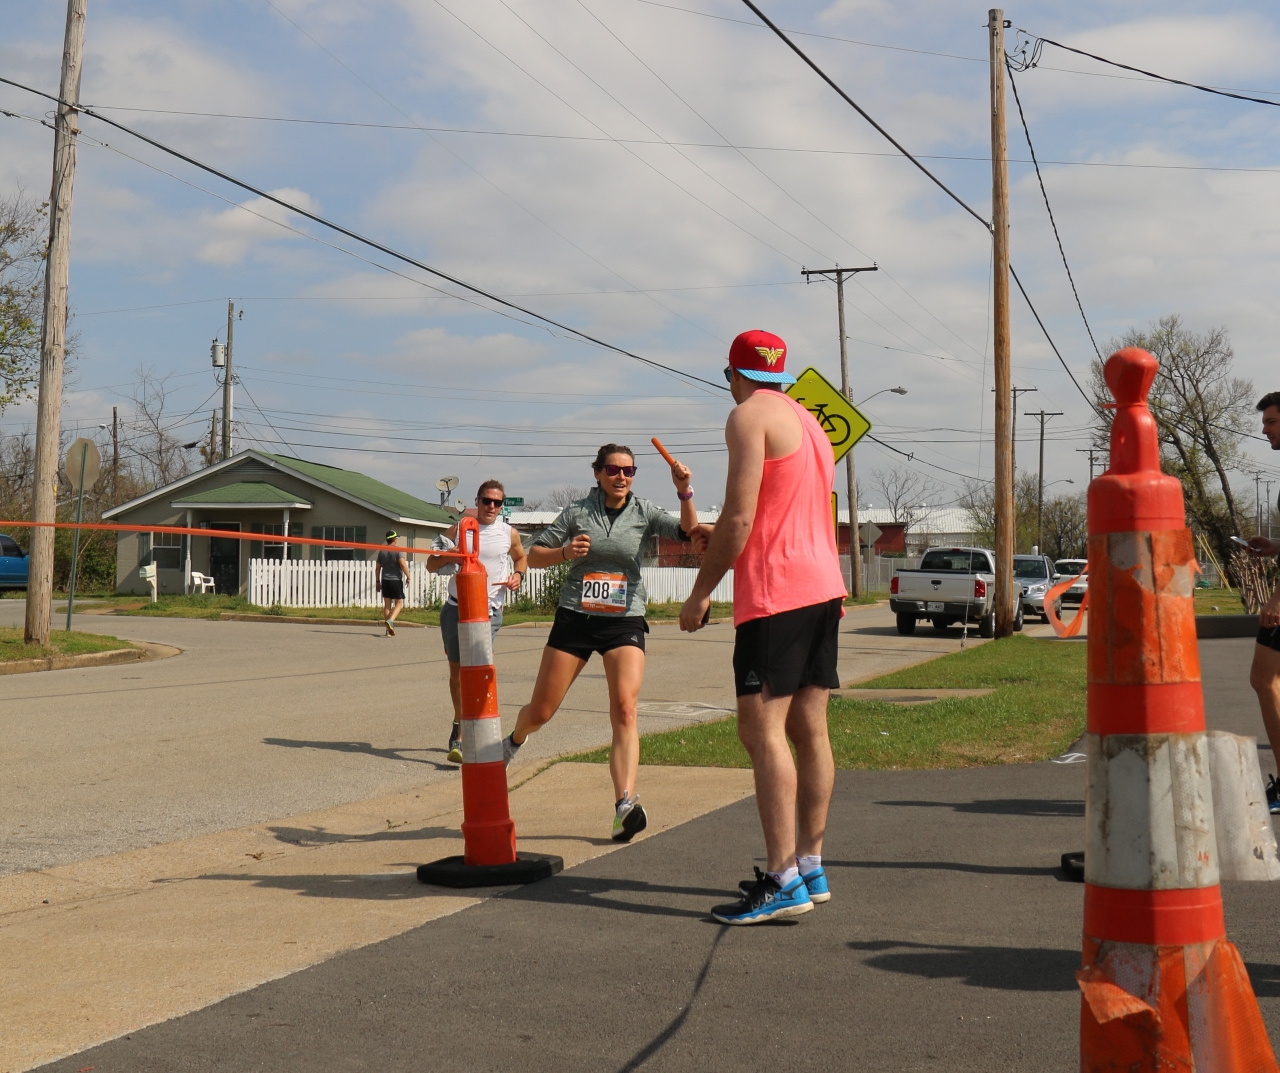 Reebok_Ragnar_Relay_Tennessee_frenchfuel_6